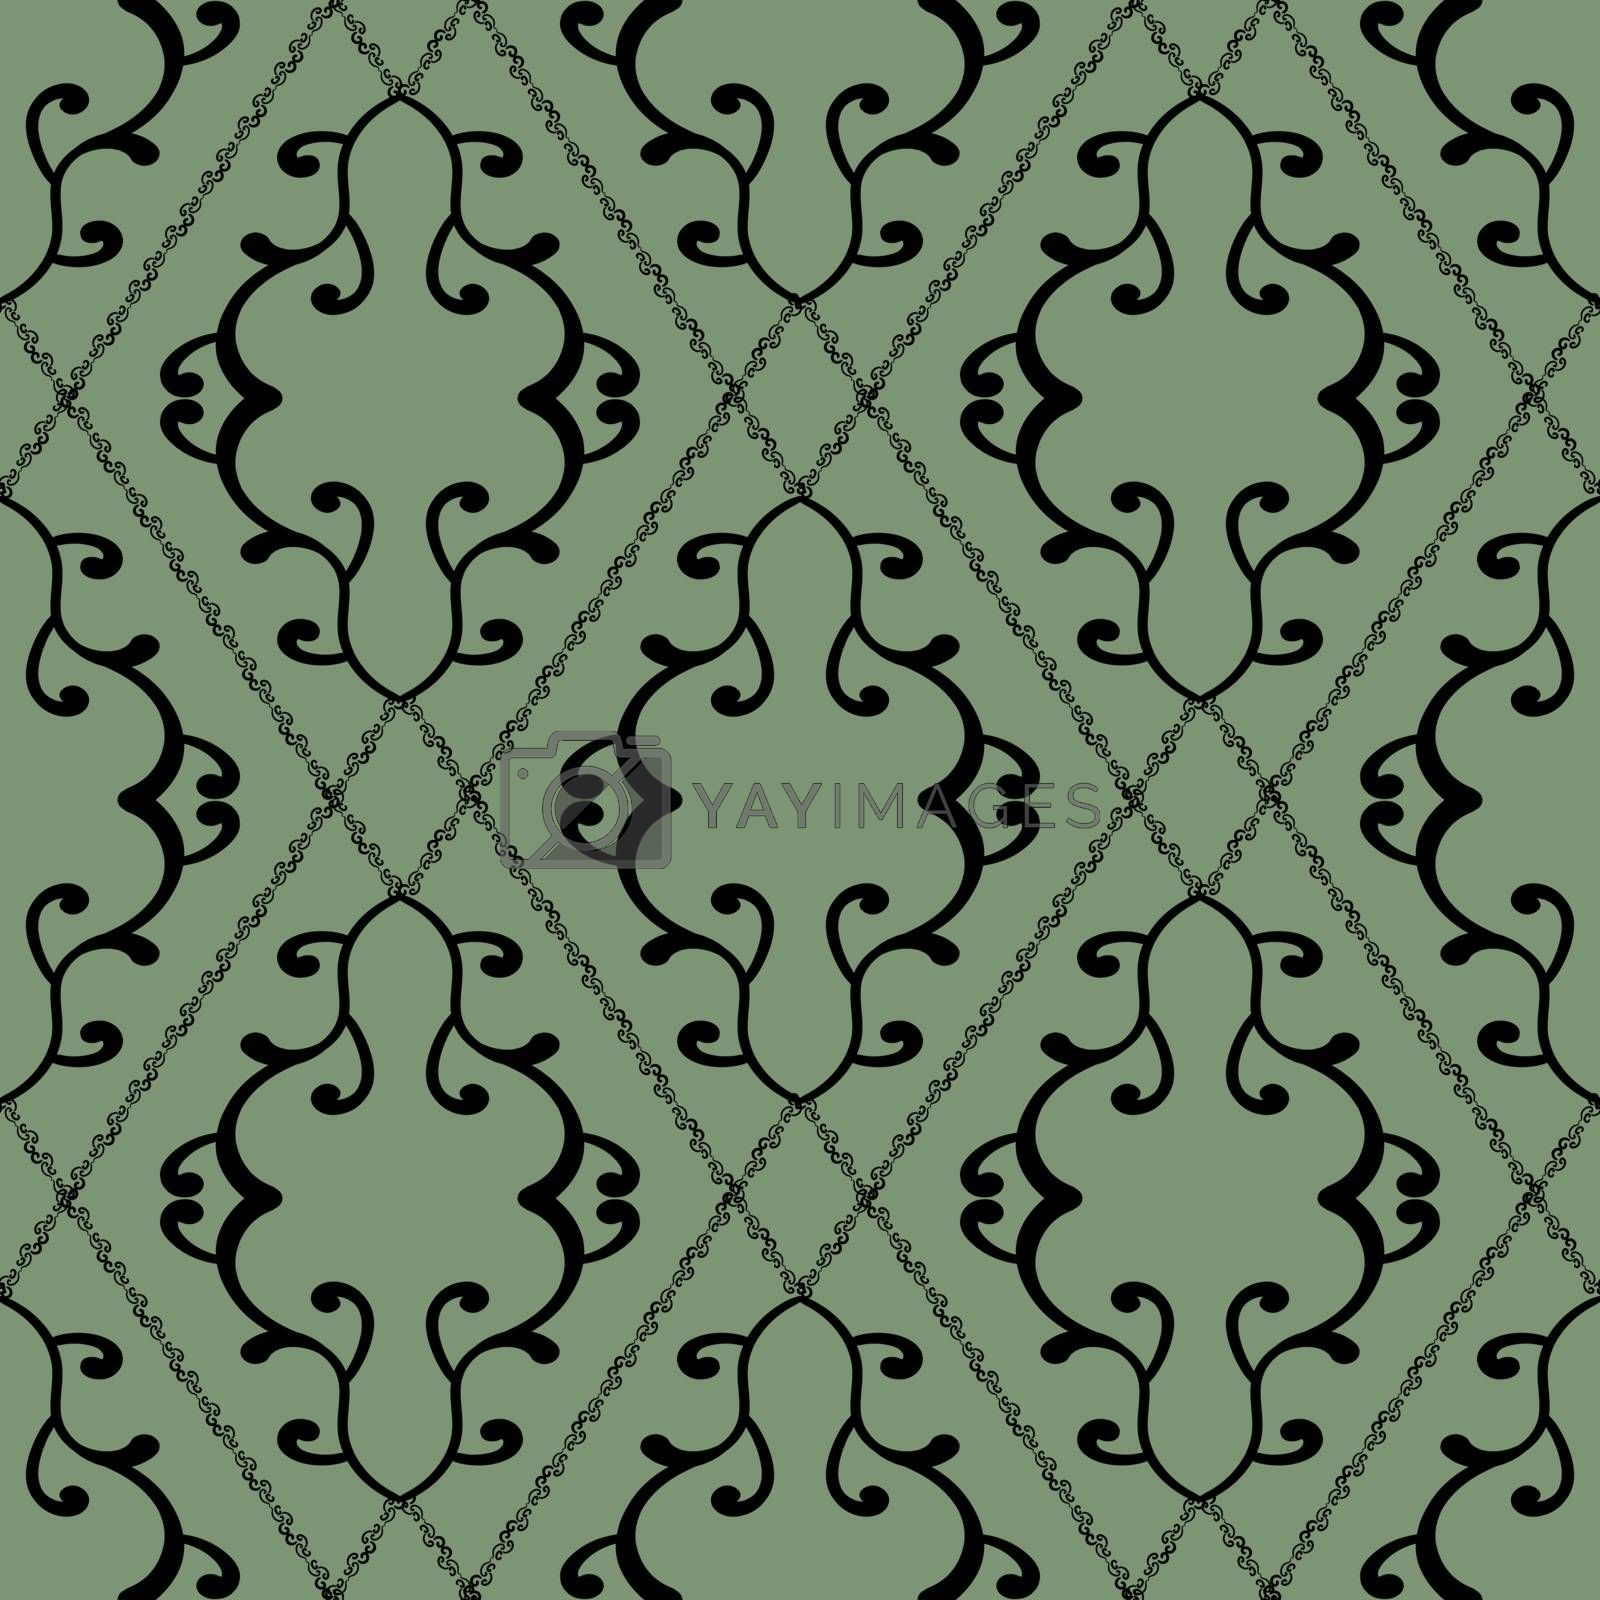 Old-fashioned wallpaper in victorian style with black seamless foliate pattern on pastel green background